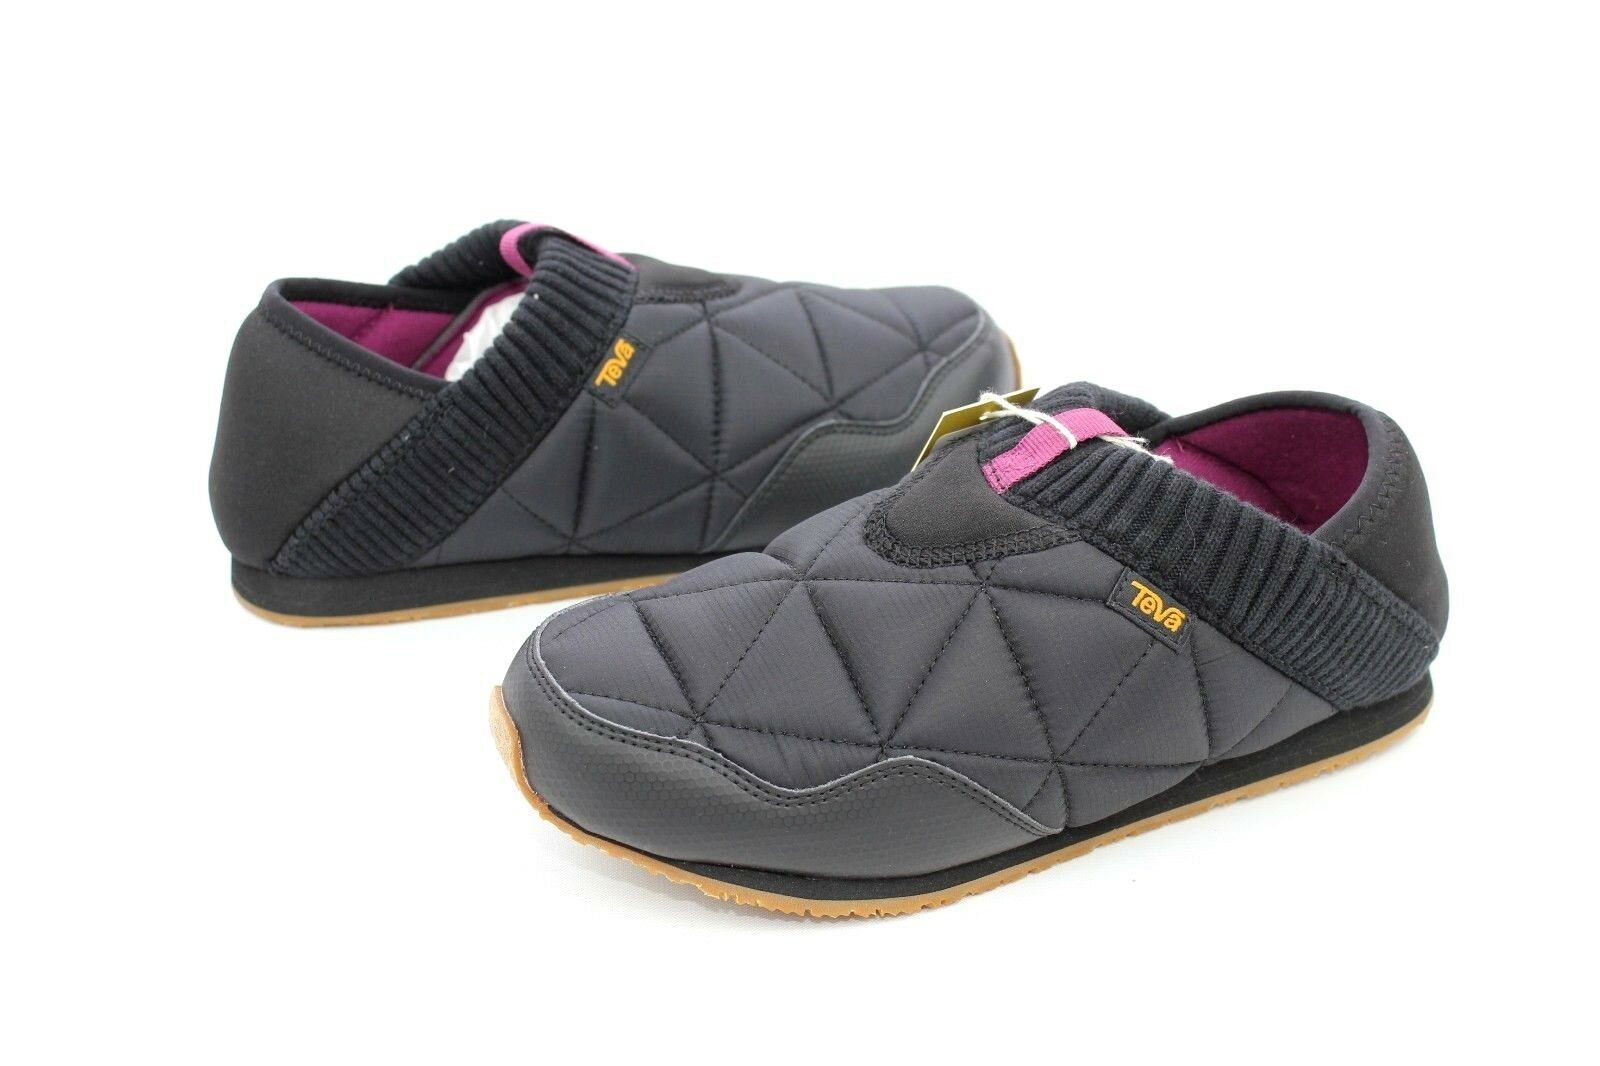 TEVA EMBER MOC RIPSTOP OUTDOOR SHOES BLACK SIZE 6 WOMENS WOMENS WOMENS US e76daa